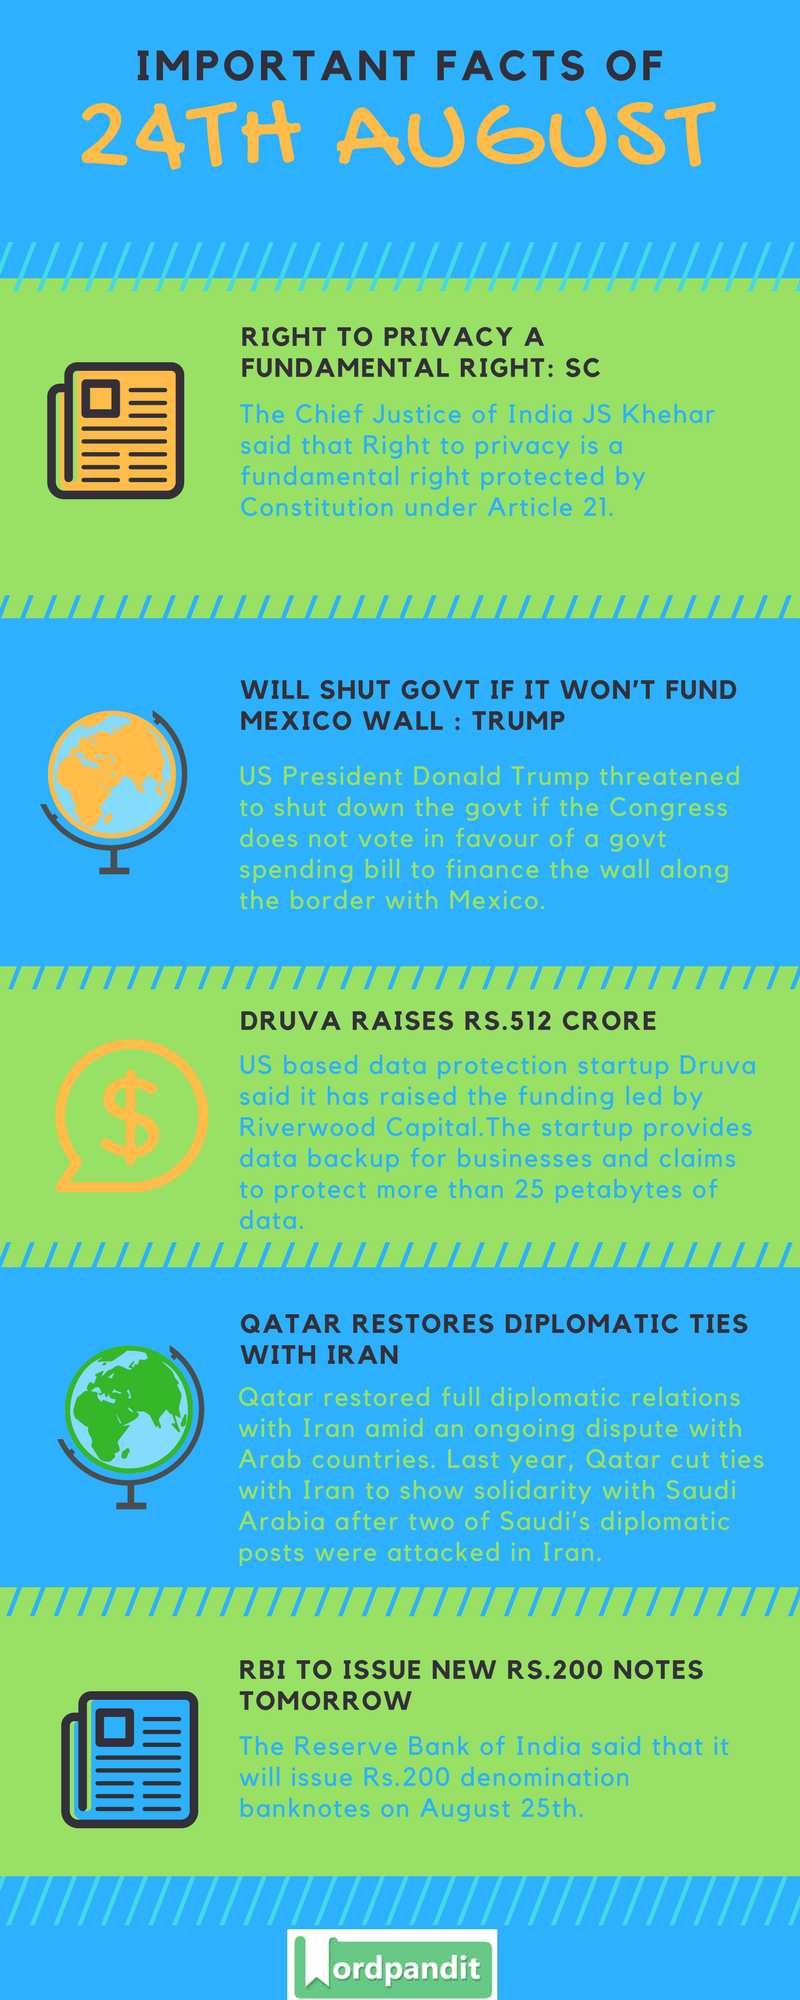 Daily-Current-Affairs-24-august-2017-Current-Affairs-Quiz-august-24-2017-Current-Affairs-Infographic